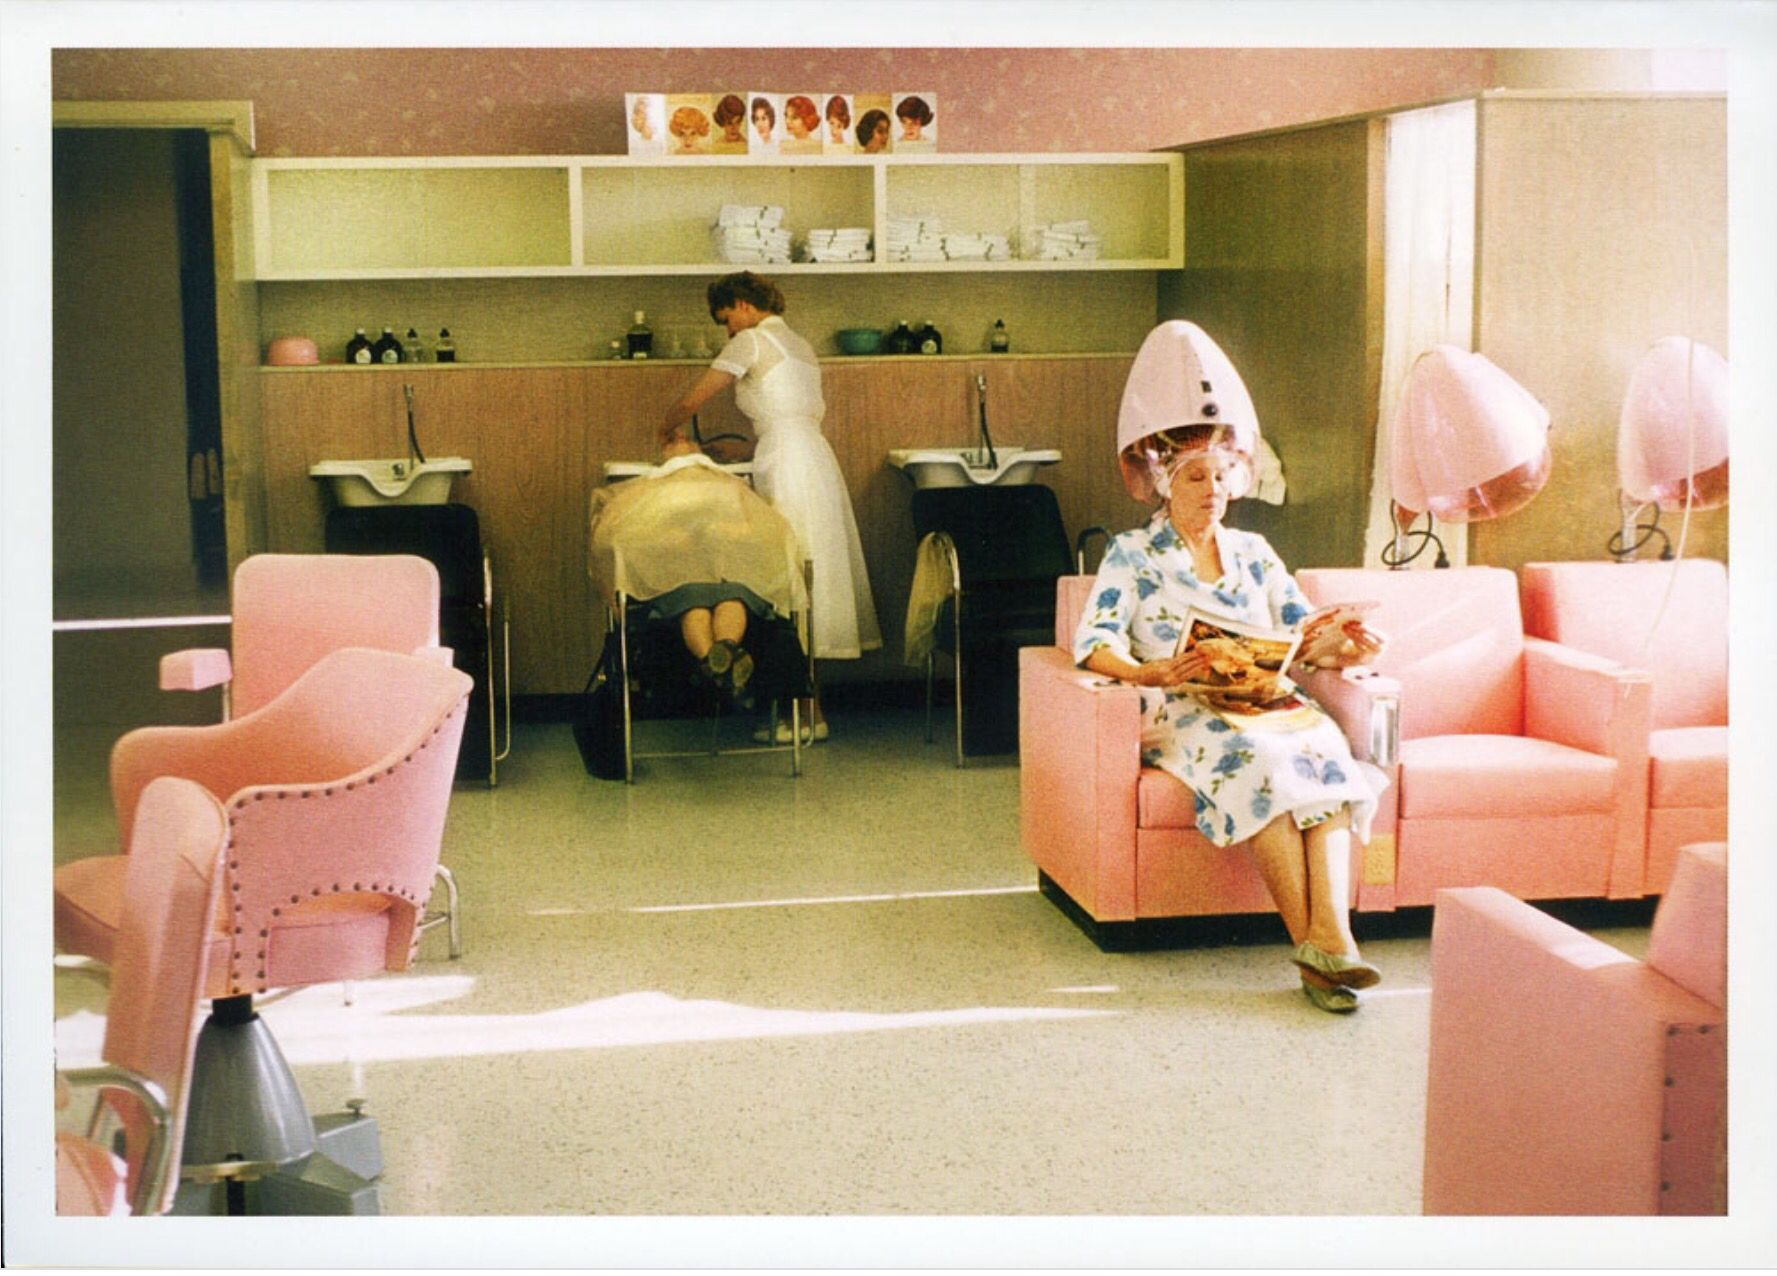 pink salon chairs chair images free download old beauty pinterest salons hair